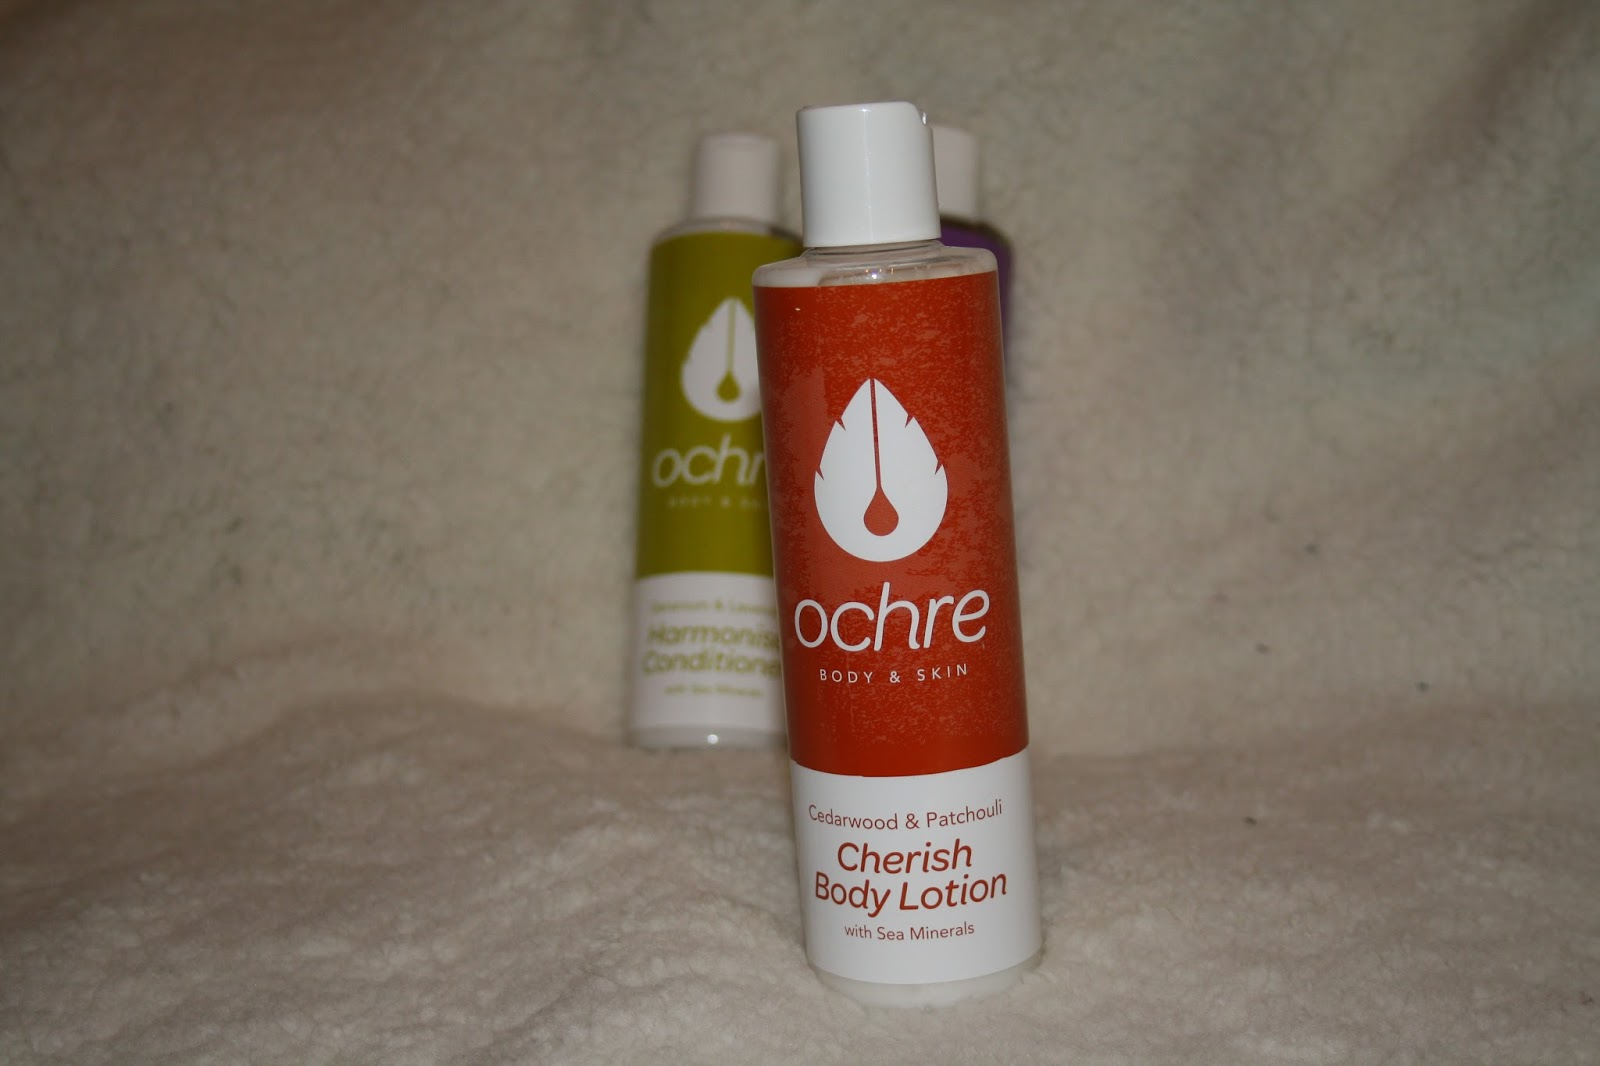 Ochre Cherish Body Lotion